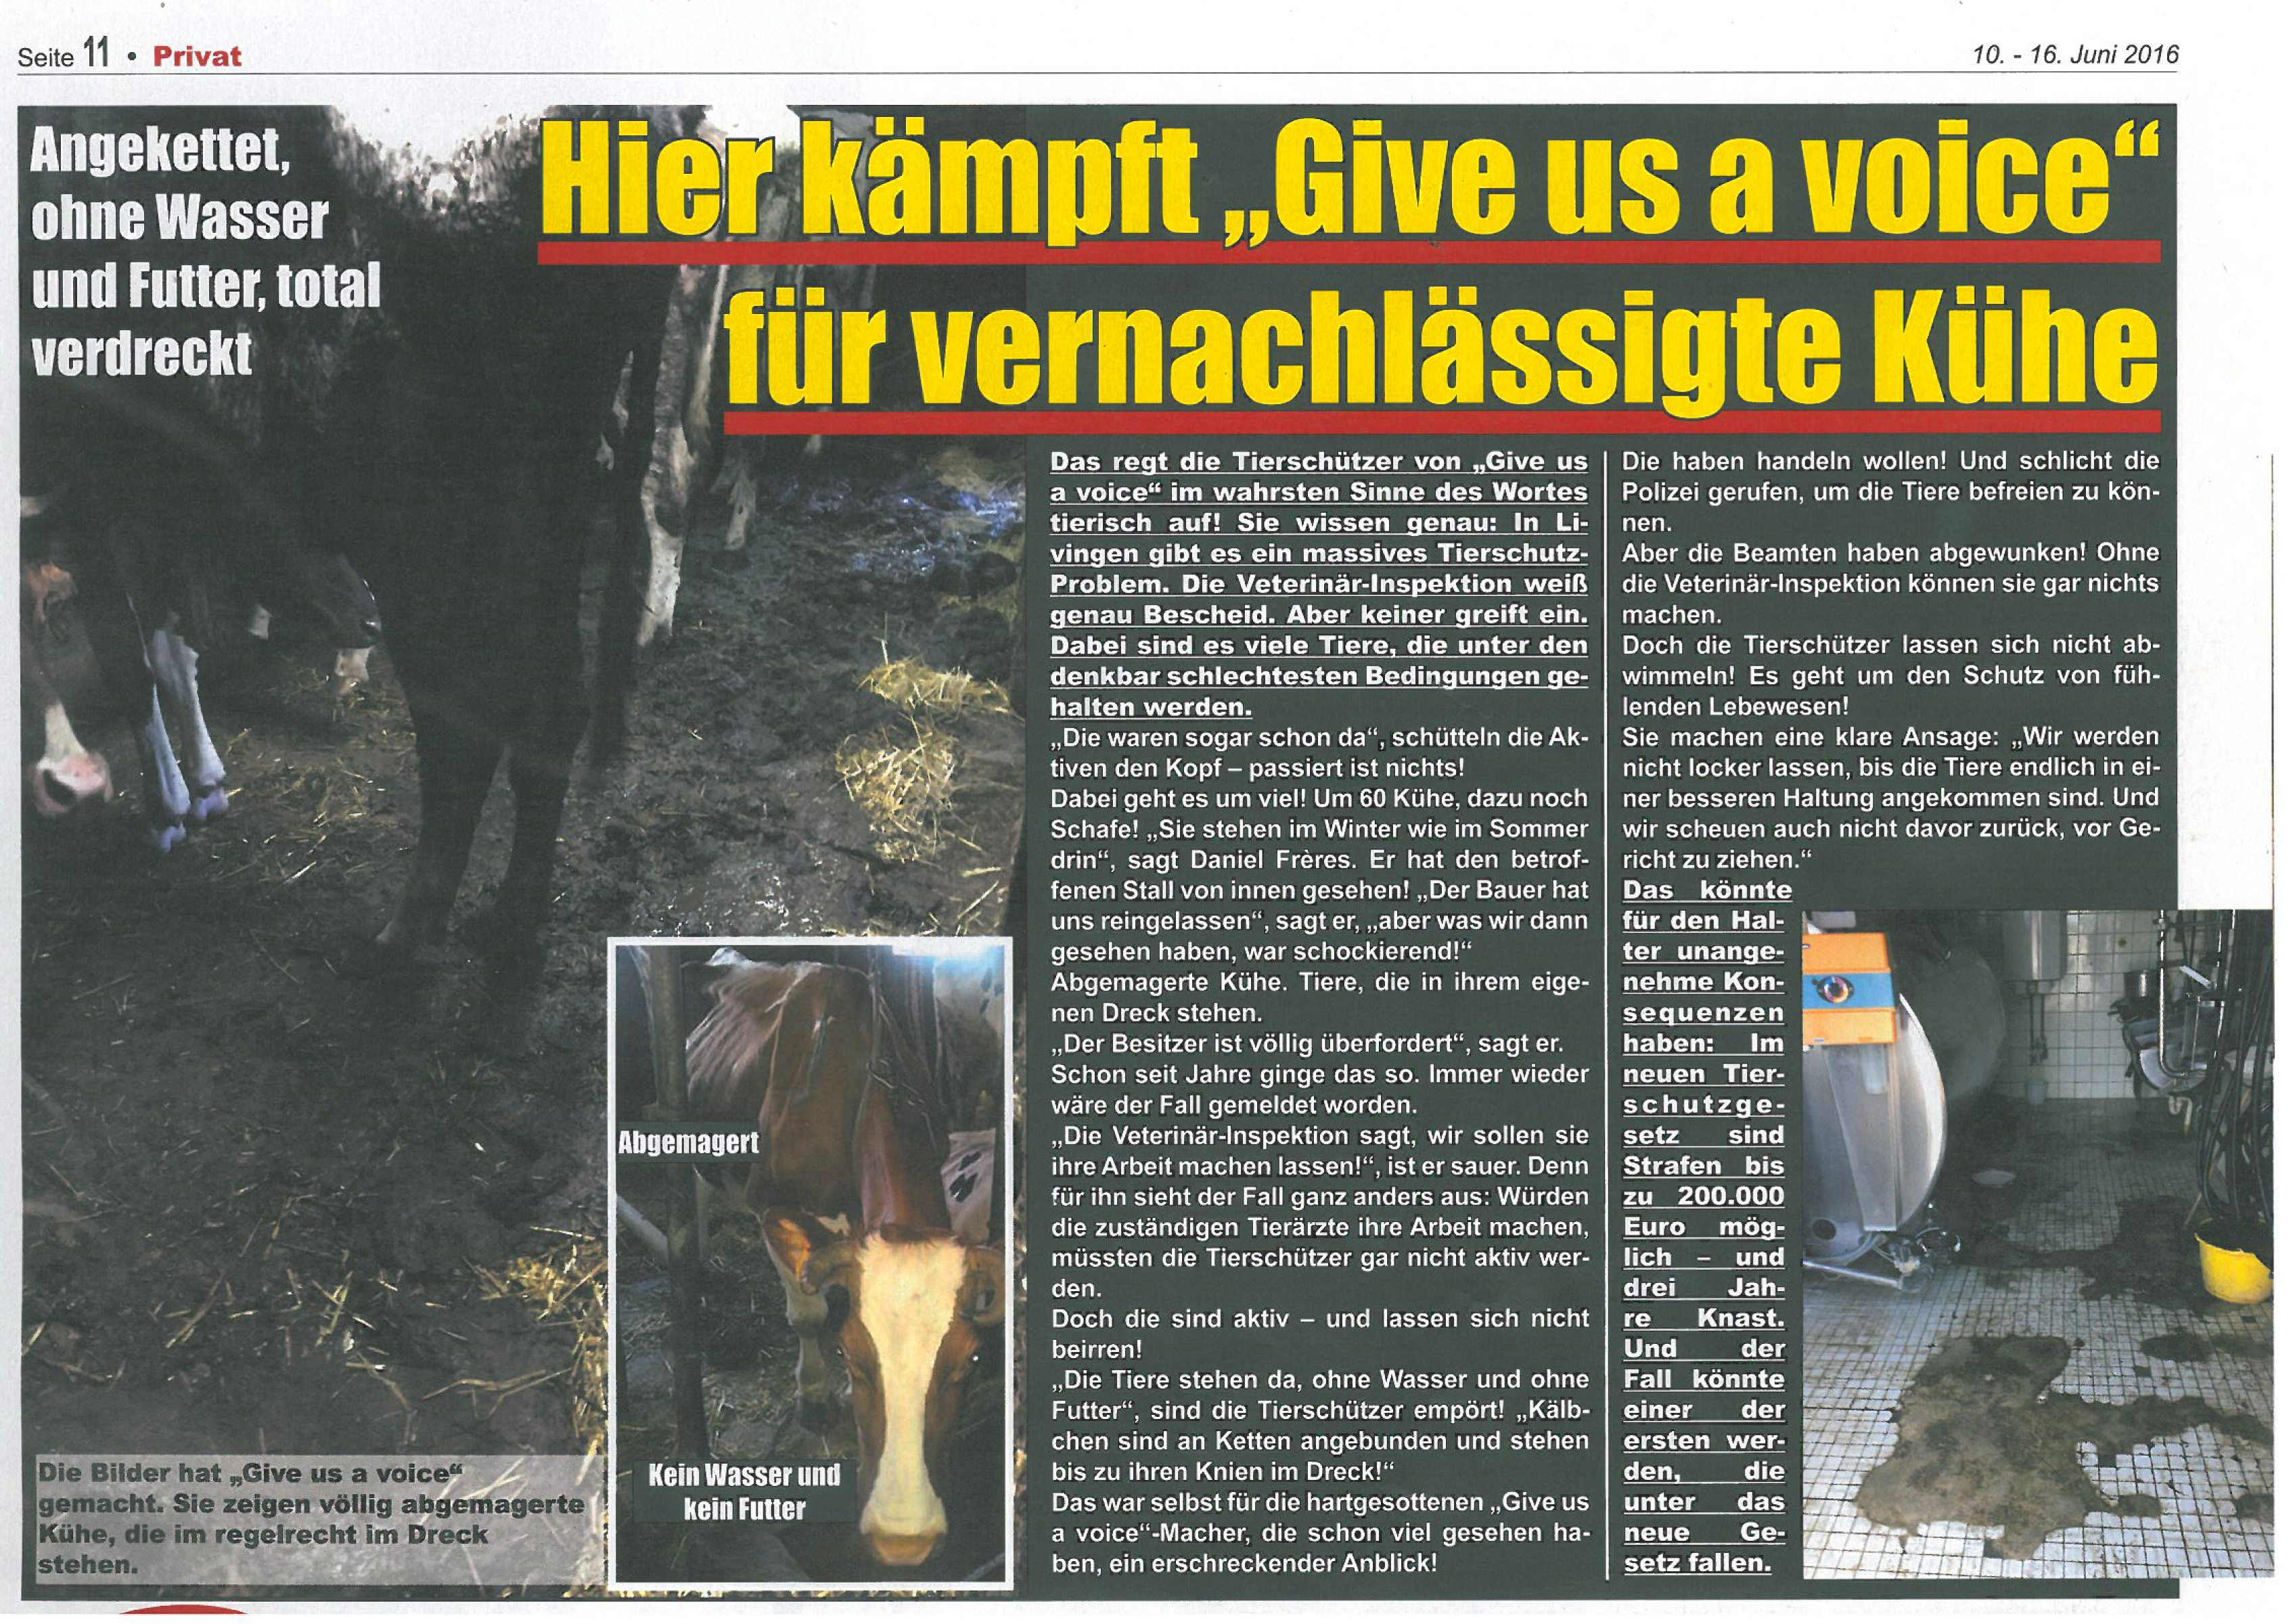 16-06-10 Privat article about cows in barn